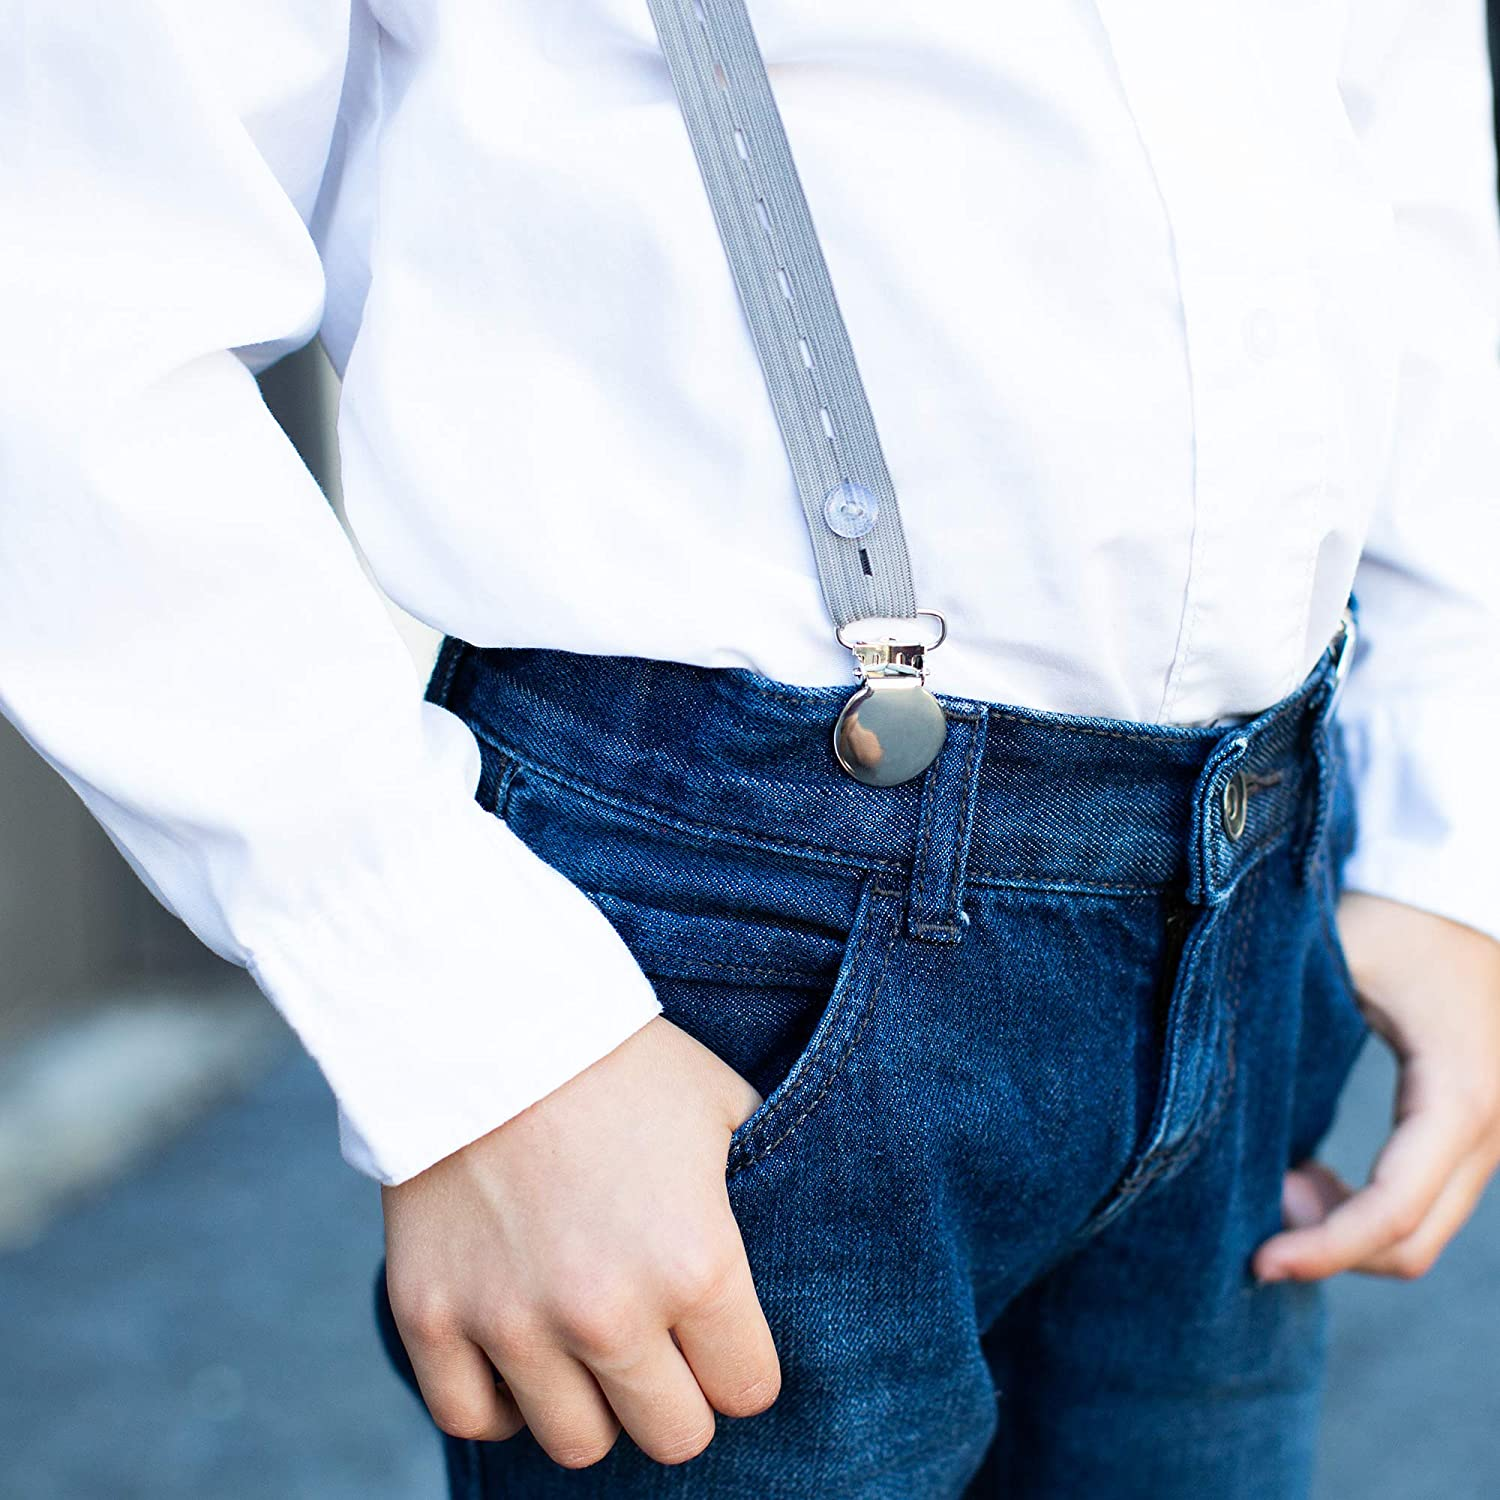 Adjustable with Buttons Adjust It Comfortable Fashionable Suspenders for Kids